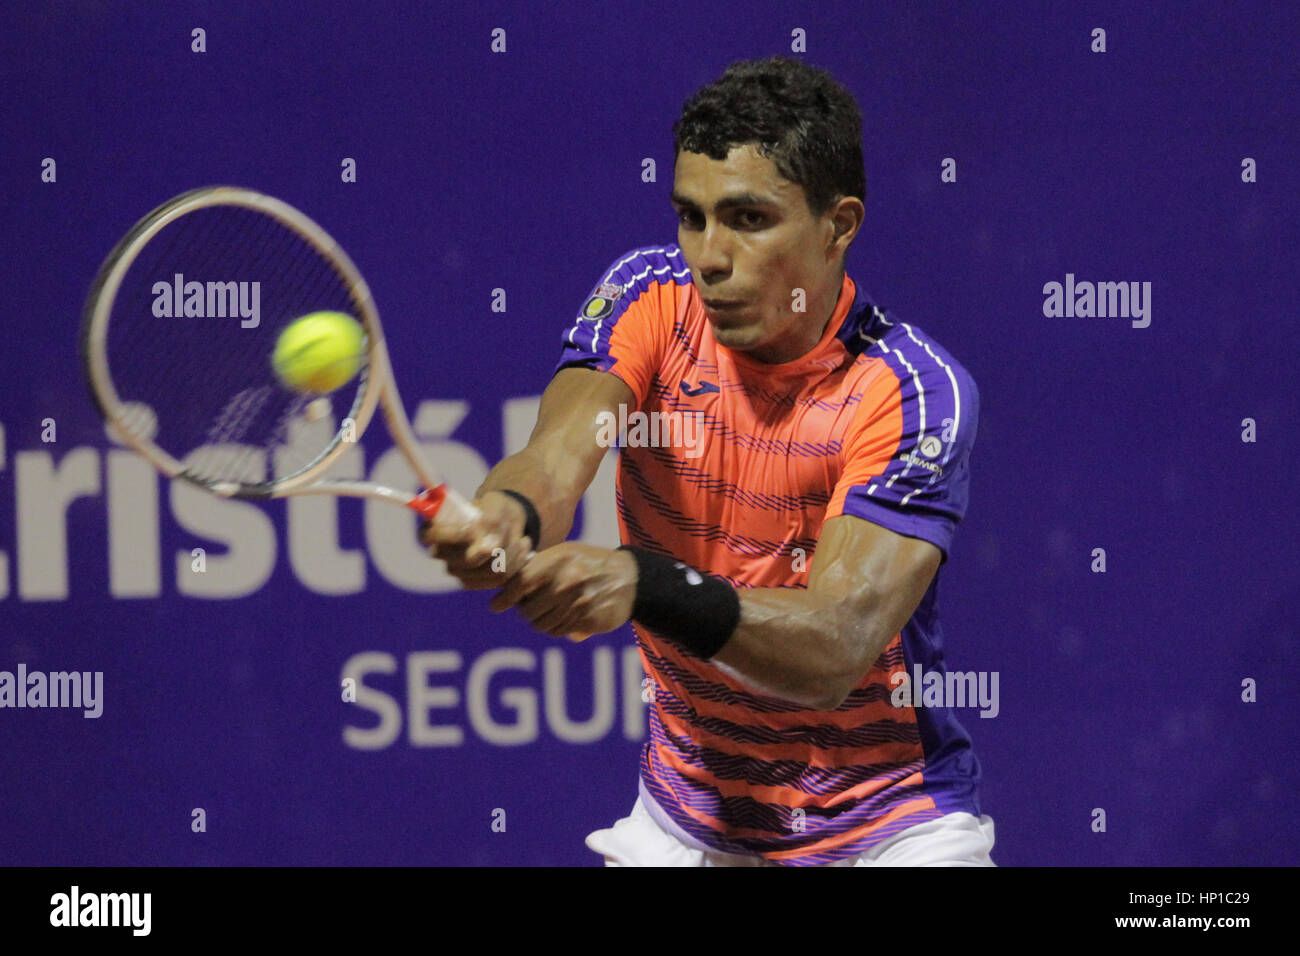 Buenos Aires, Argentina. 16th February 2017. Brazilian player Thiago Monteiro wins his match over Tommy Robredo - Stock Image